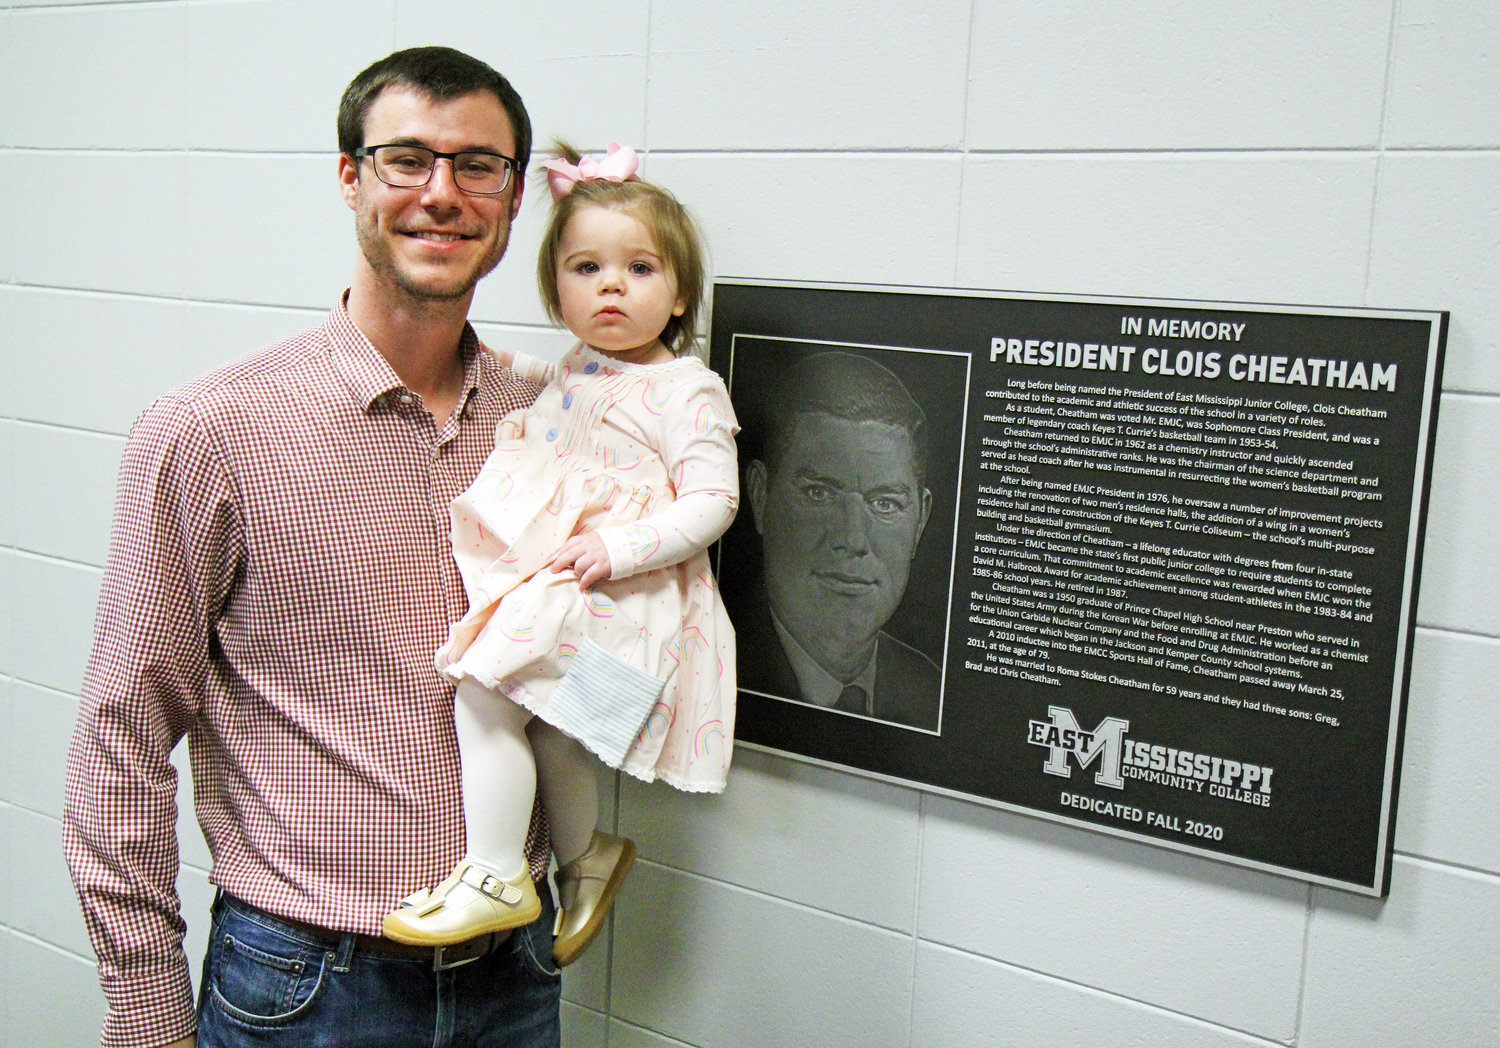 Daniel Cheatham and daughter, Roma Jane Cheatham, take a photo with a plaque honoring their grandfather and great-grandfather, former EMCC President Clois Cheatham, after a ceremony Monday night on EMCC's Scooba campus. The plaque was unveiled in a dedication of the Science wing of Oktibbeha Hall.